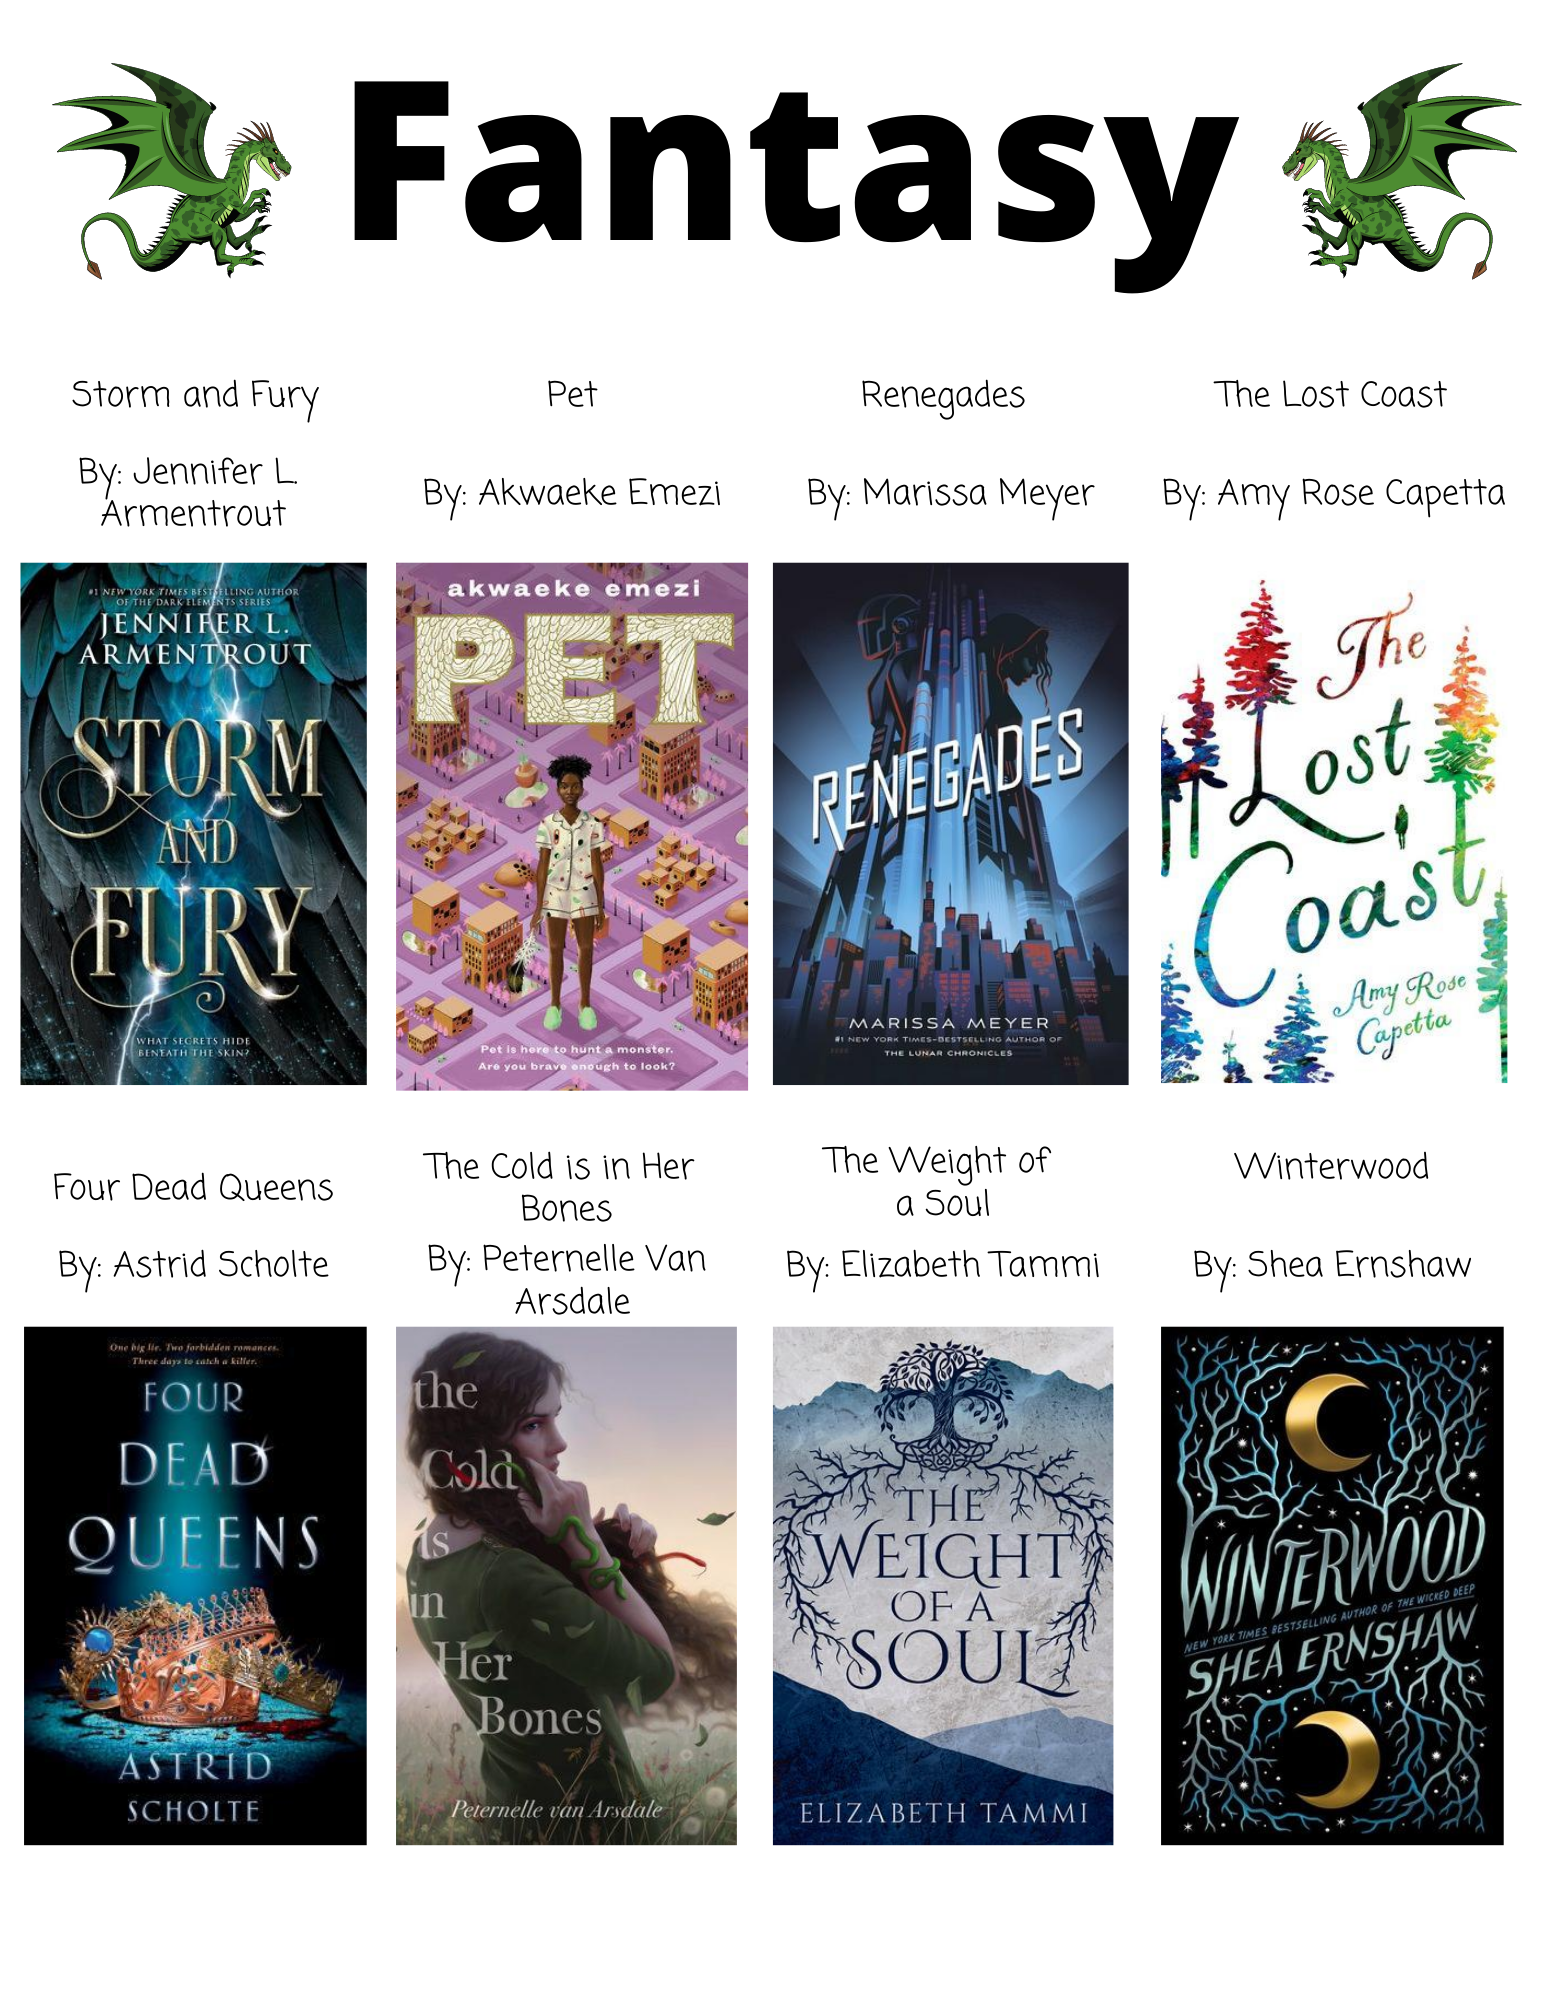 Fantasy Storm and Fury By: Jennifer L.  Armentrout Pet By: Akwaeke Emezi Renegades By: Marissa Meyer The Lost Coast By: Amy Rose Capetta Four Dead Queens By: Astrid Scholte The Cold is in Her  Bones By: Peternelle Van  Arsdale The Weight of  a Soul By: Elizabeth Tammi Winterwood By: Shea Ernshaw Cursed By: Thomas Wheeler All of Us  with Wings By: Michelle Ruiz Keil Resurrection Girls By: Ava Morgyn Damsel By: Elana K. Arnold Sea Witch Rising By: Sarah HenningUndead Girl GangBy: Lily Anderson  House of Salt  and Sorrows By: Erin A. Craig A House of Rage  and Sorrow By: Sangu Mandanna The Waning Age By: S.E.. Grove Storm-Wake By: Lucy Christopher Sorcery of Thorns   By: Margaret Rogerson  Other Words  for Smoke By: Sarah Maria Griffin Loki Where  Mischief Lies By: Mackenzi Lee The Last Voyage of  Poe Blythe By: Ally Condie House of Salt  and Sorrows By: A.W. JanthaAngel Mage By: Garth Nix